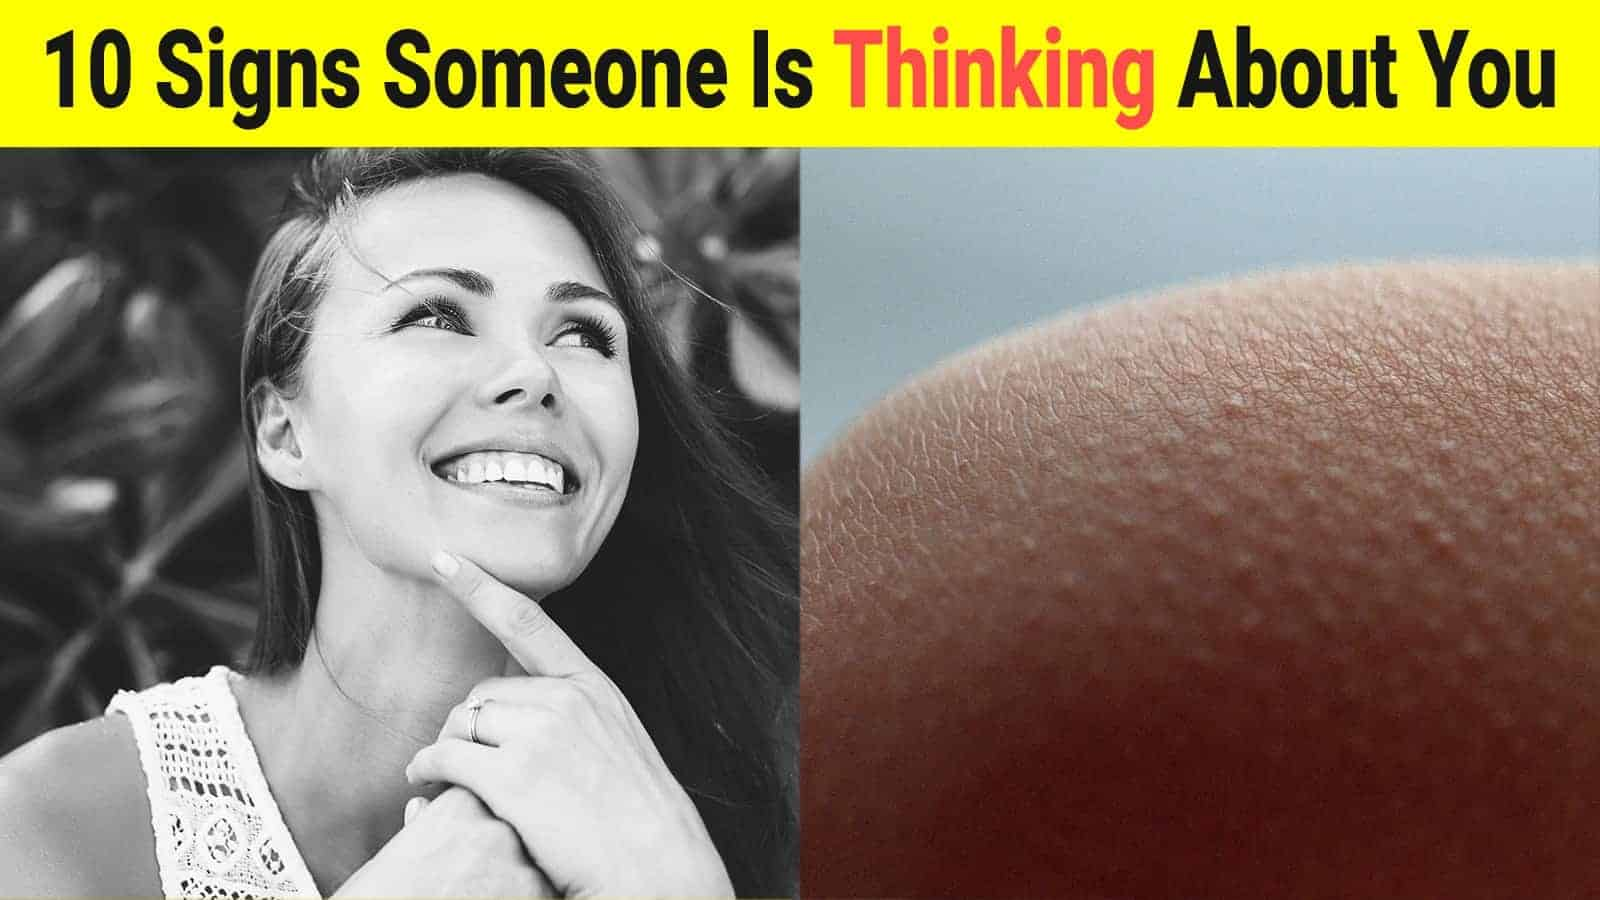 10 Signs Someone Is Thinking About You